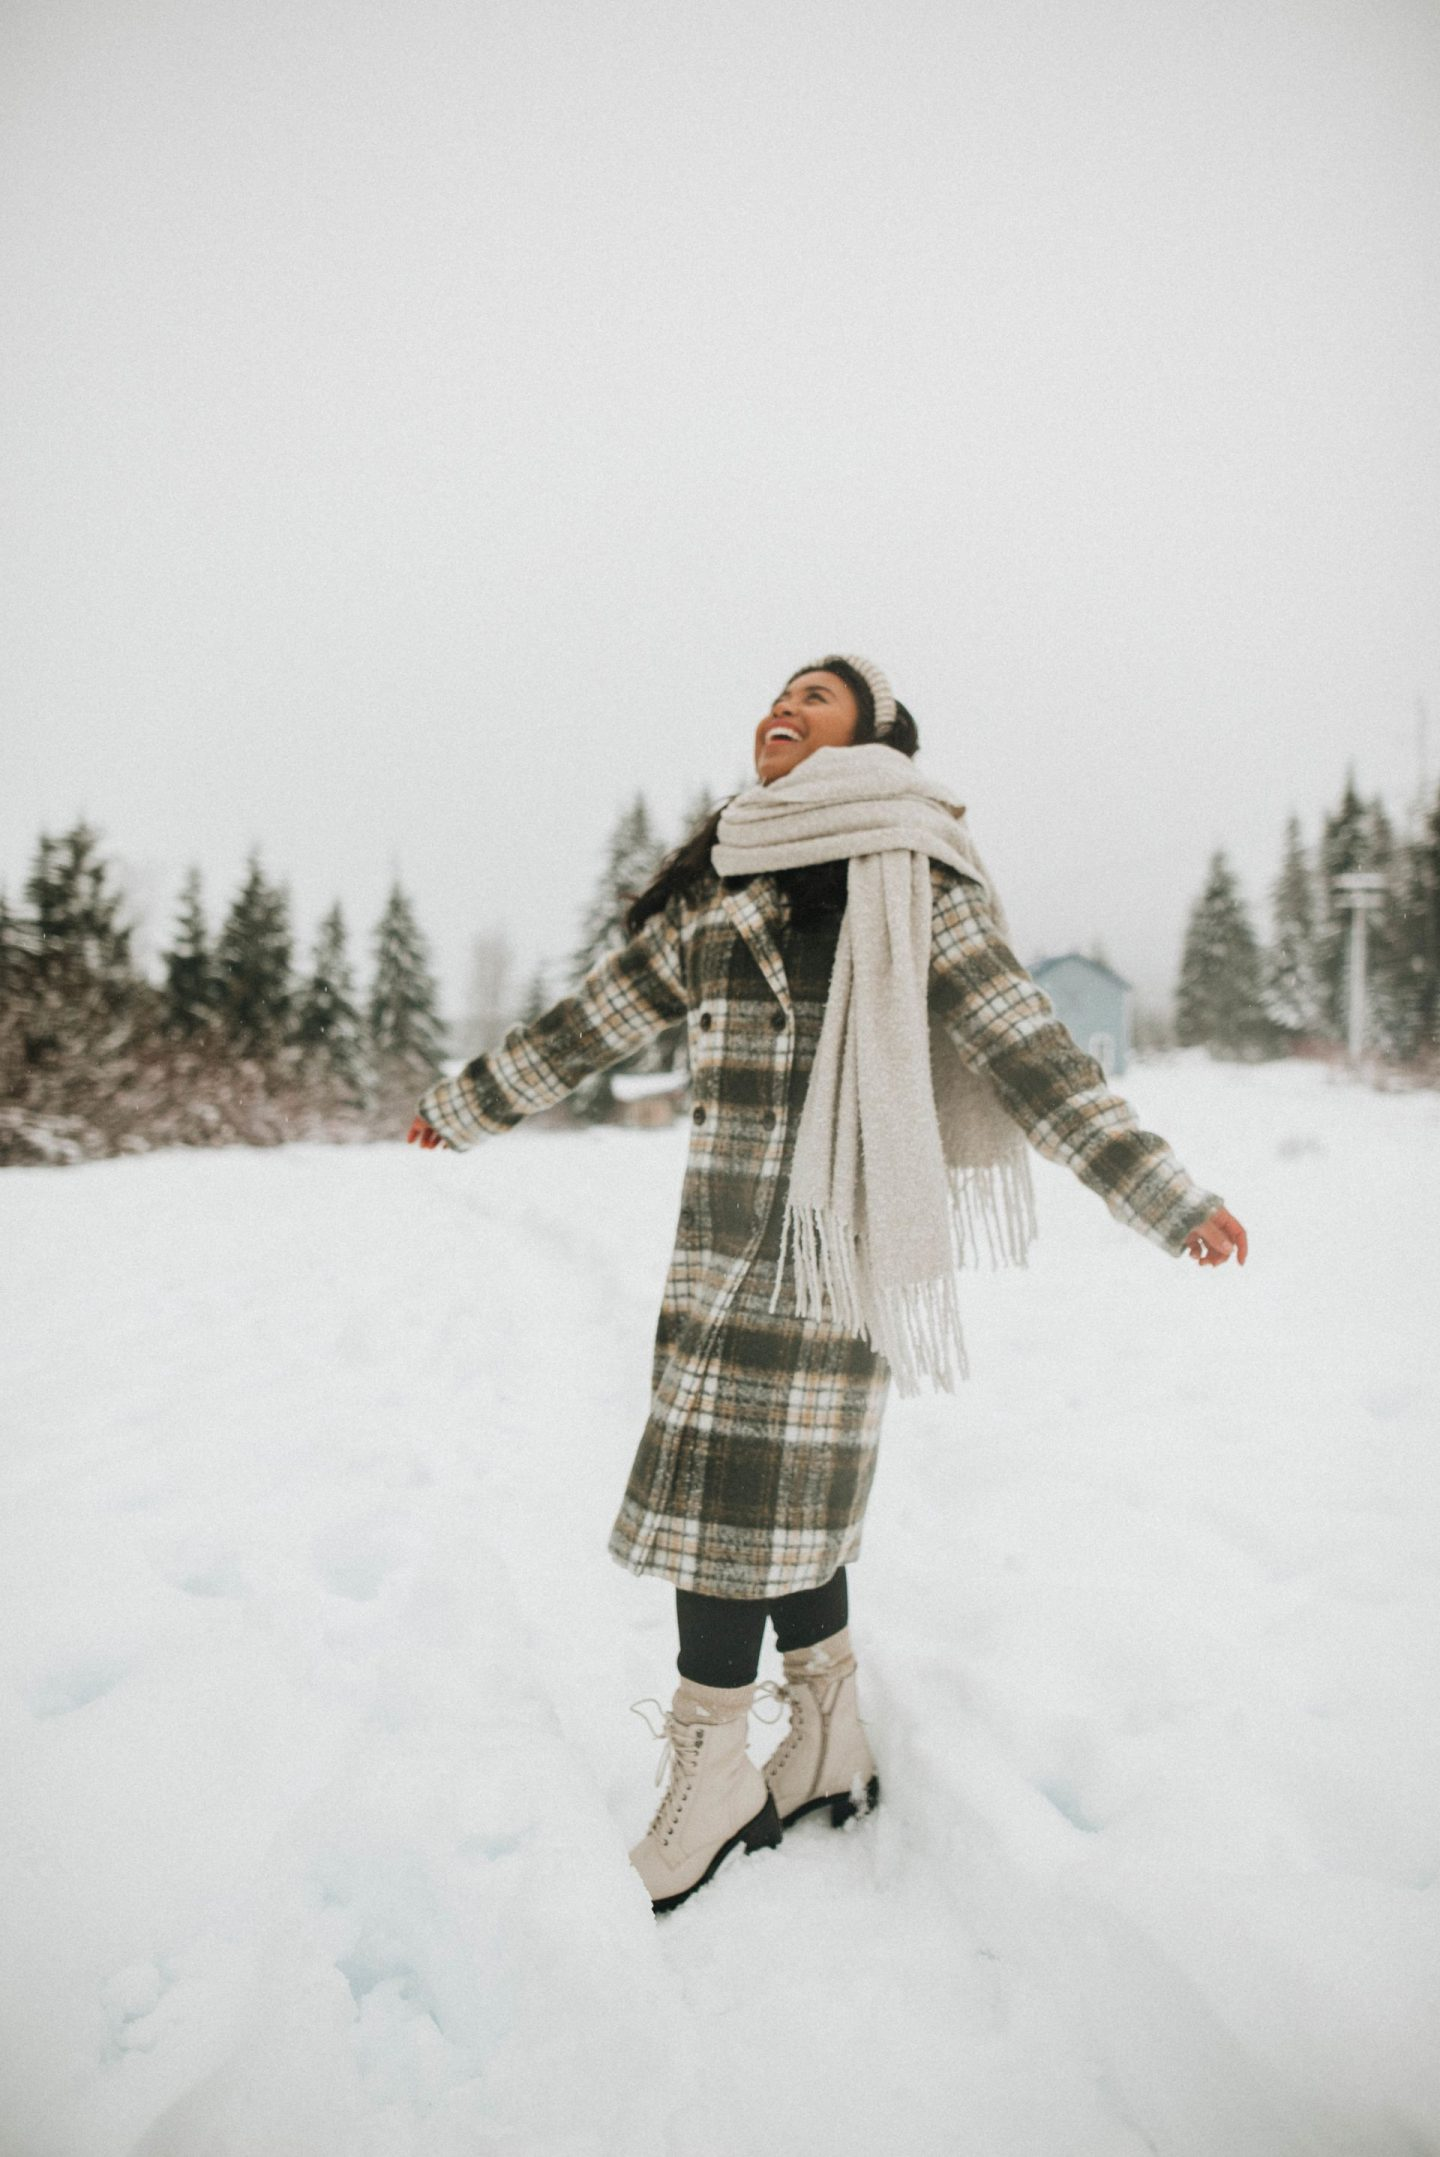 winter outfit ideas - taking blogging full-time - taking content creation full-time - Snoqualmie Pass - image from @emmasedition - www.emmasedition.com